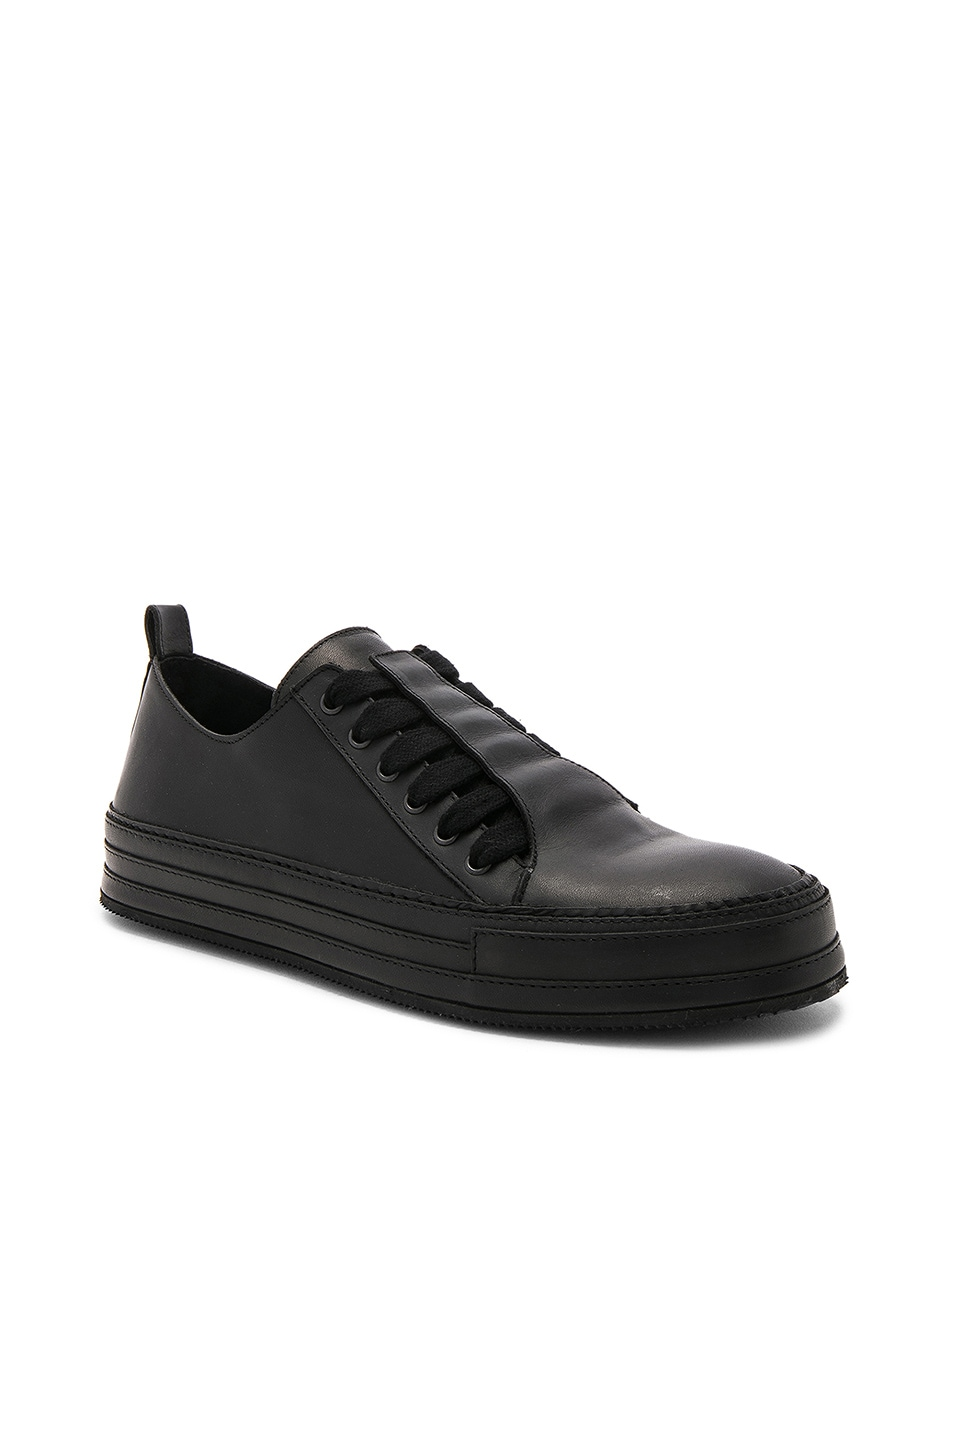 Black Leather Sneakers Ann Demeulemeester COsW8